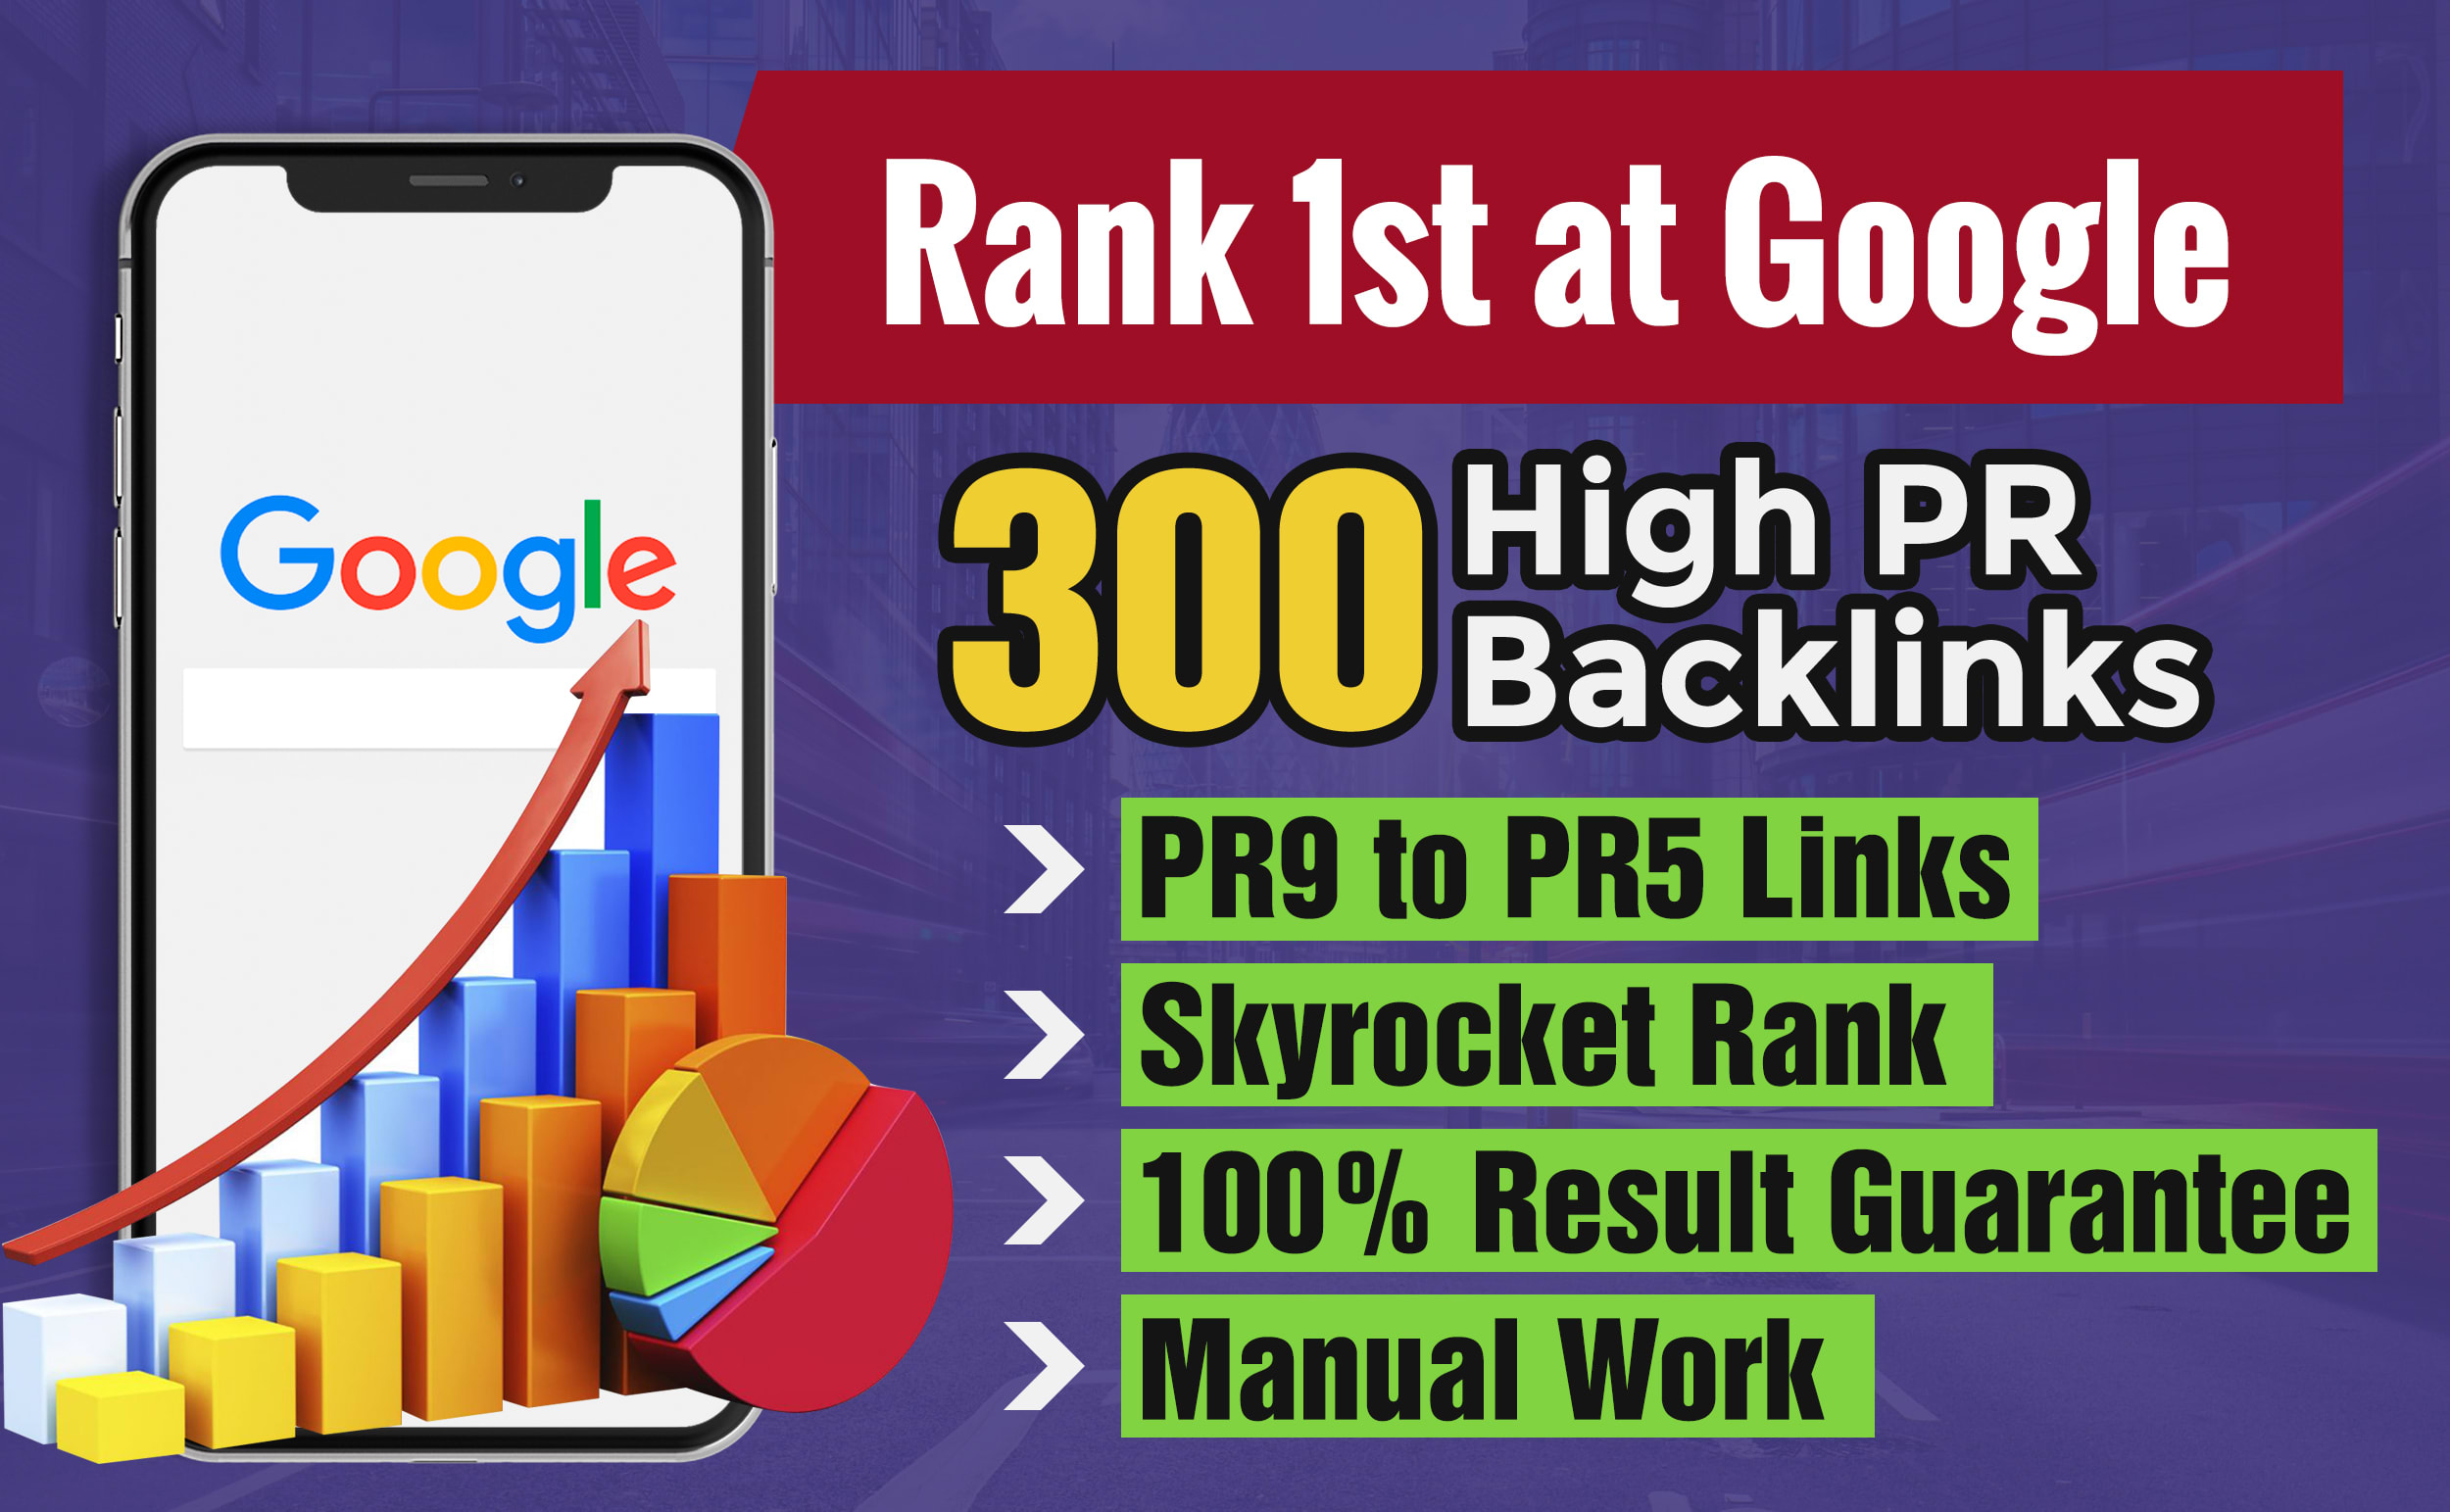 do rank one at google with 300 high pr backlinks